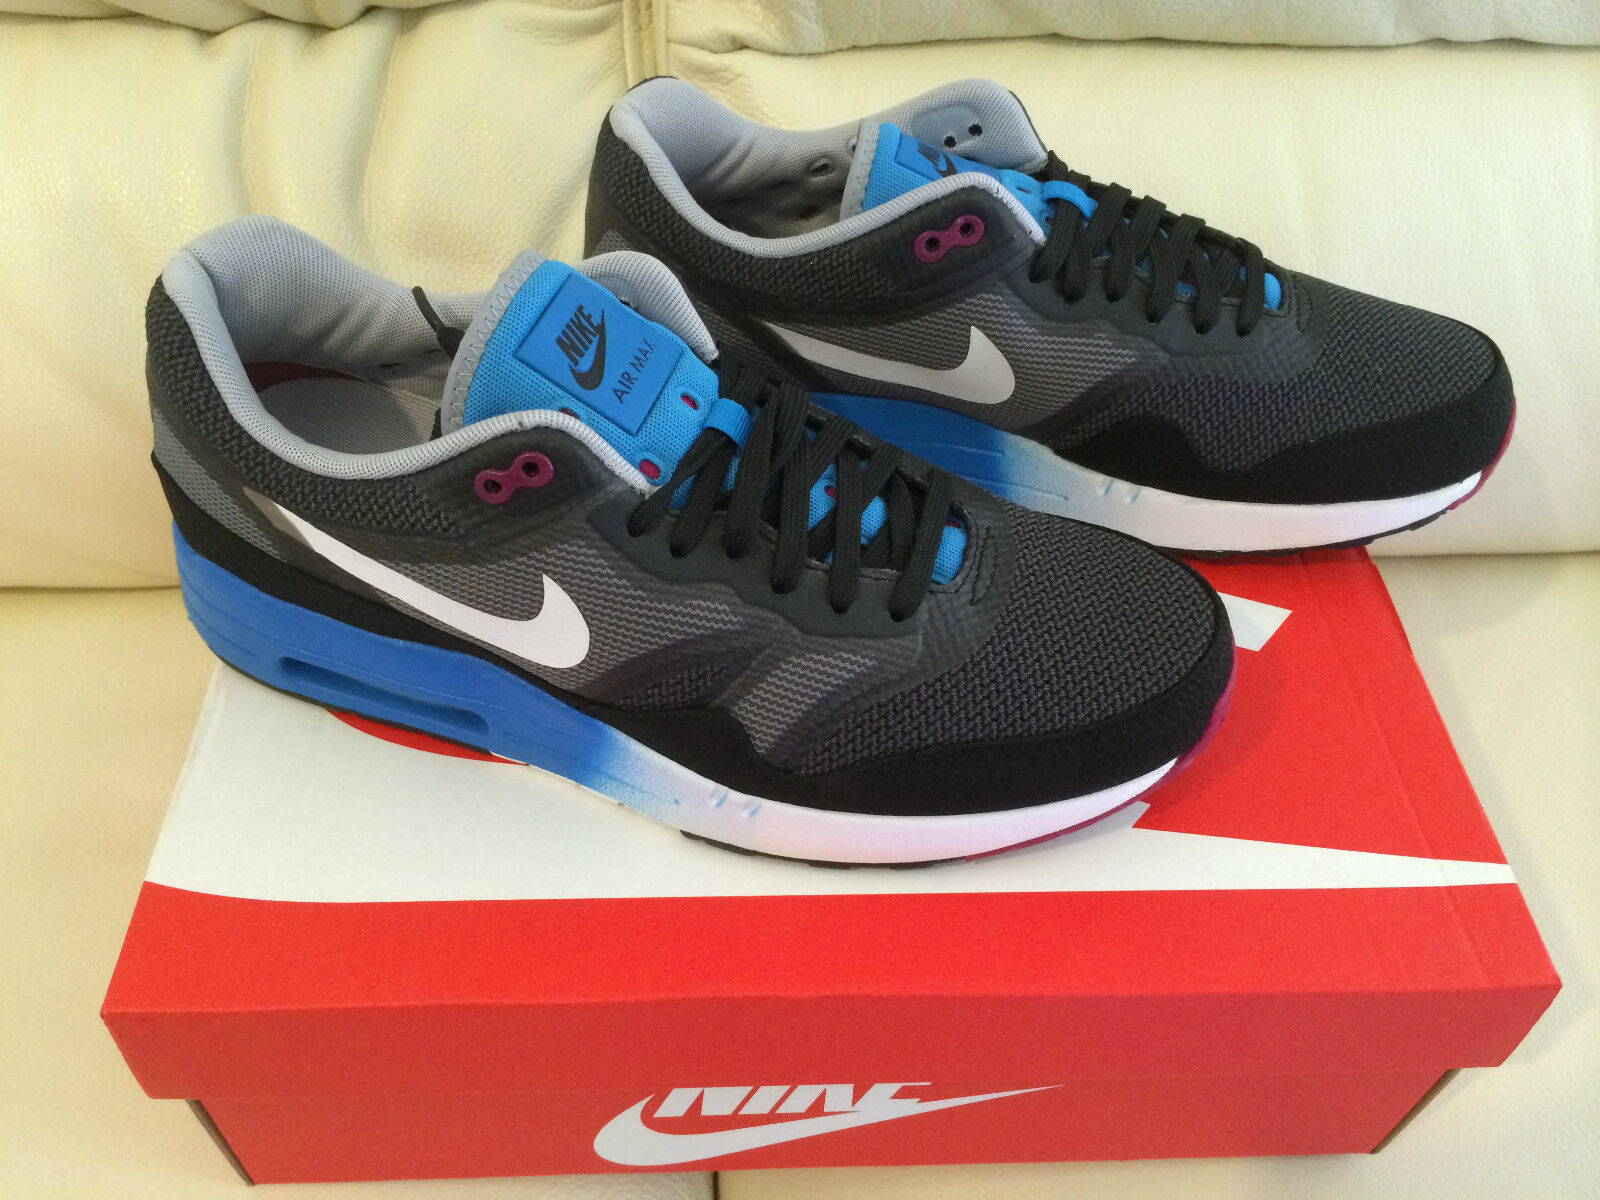 NIKE AIR MAX 1 C2.0 TRAINERS Schuhe UK 8 & 10.5 BLACK Weiß Blau NEW